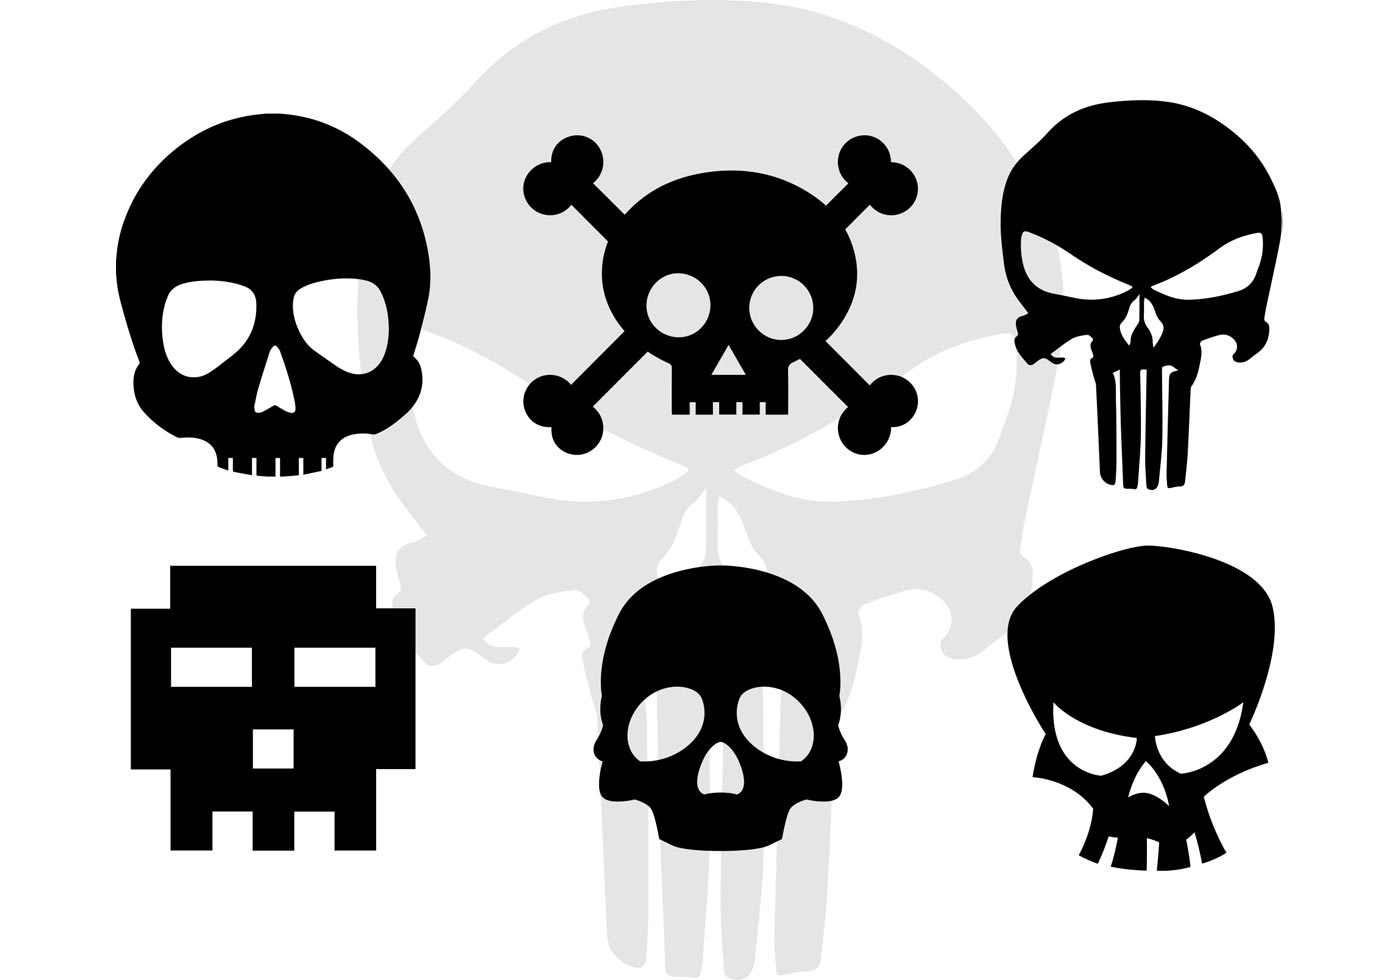 skeleton silhouette skeleton silhouette clipart 20 free cliparts download skeleton silhouette